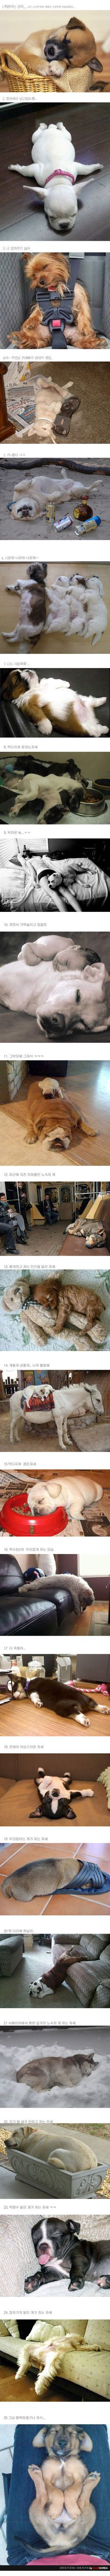 THIS IS THE MOST PRECIOUS THING EVER!!